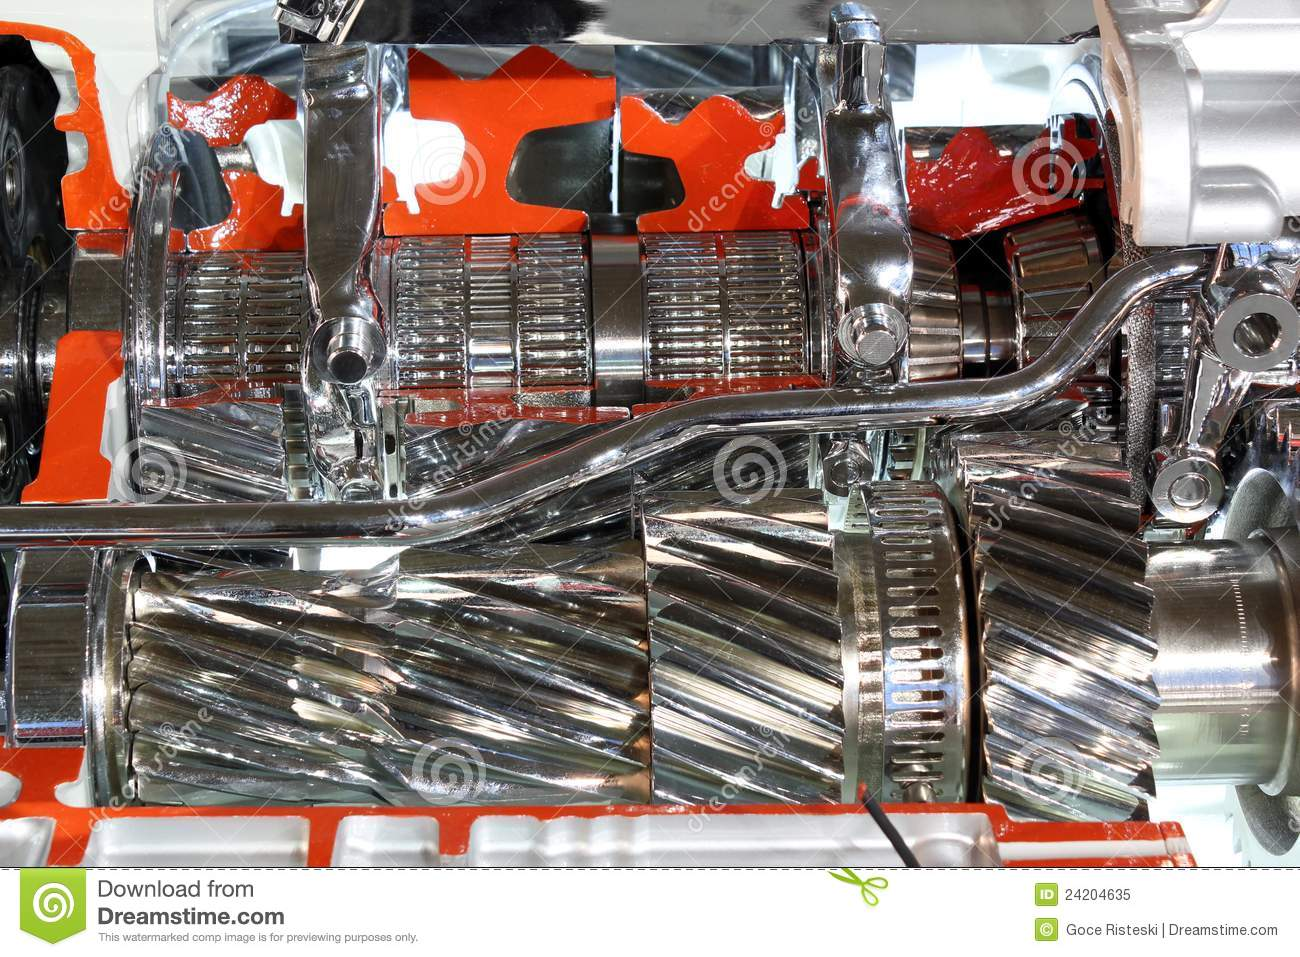 Rebuild Automatic Transmission >> Heavy Truck Transmission Gears Stock Image - Image of part, generate: 24204635